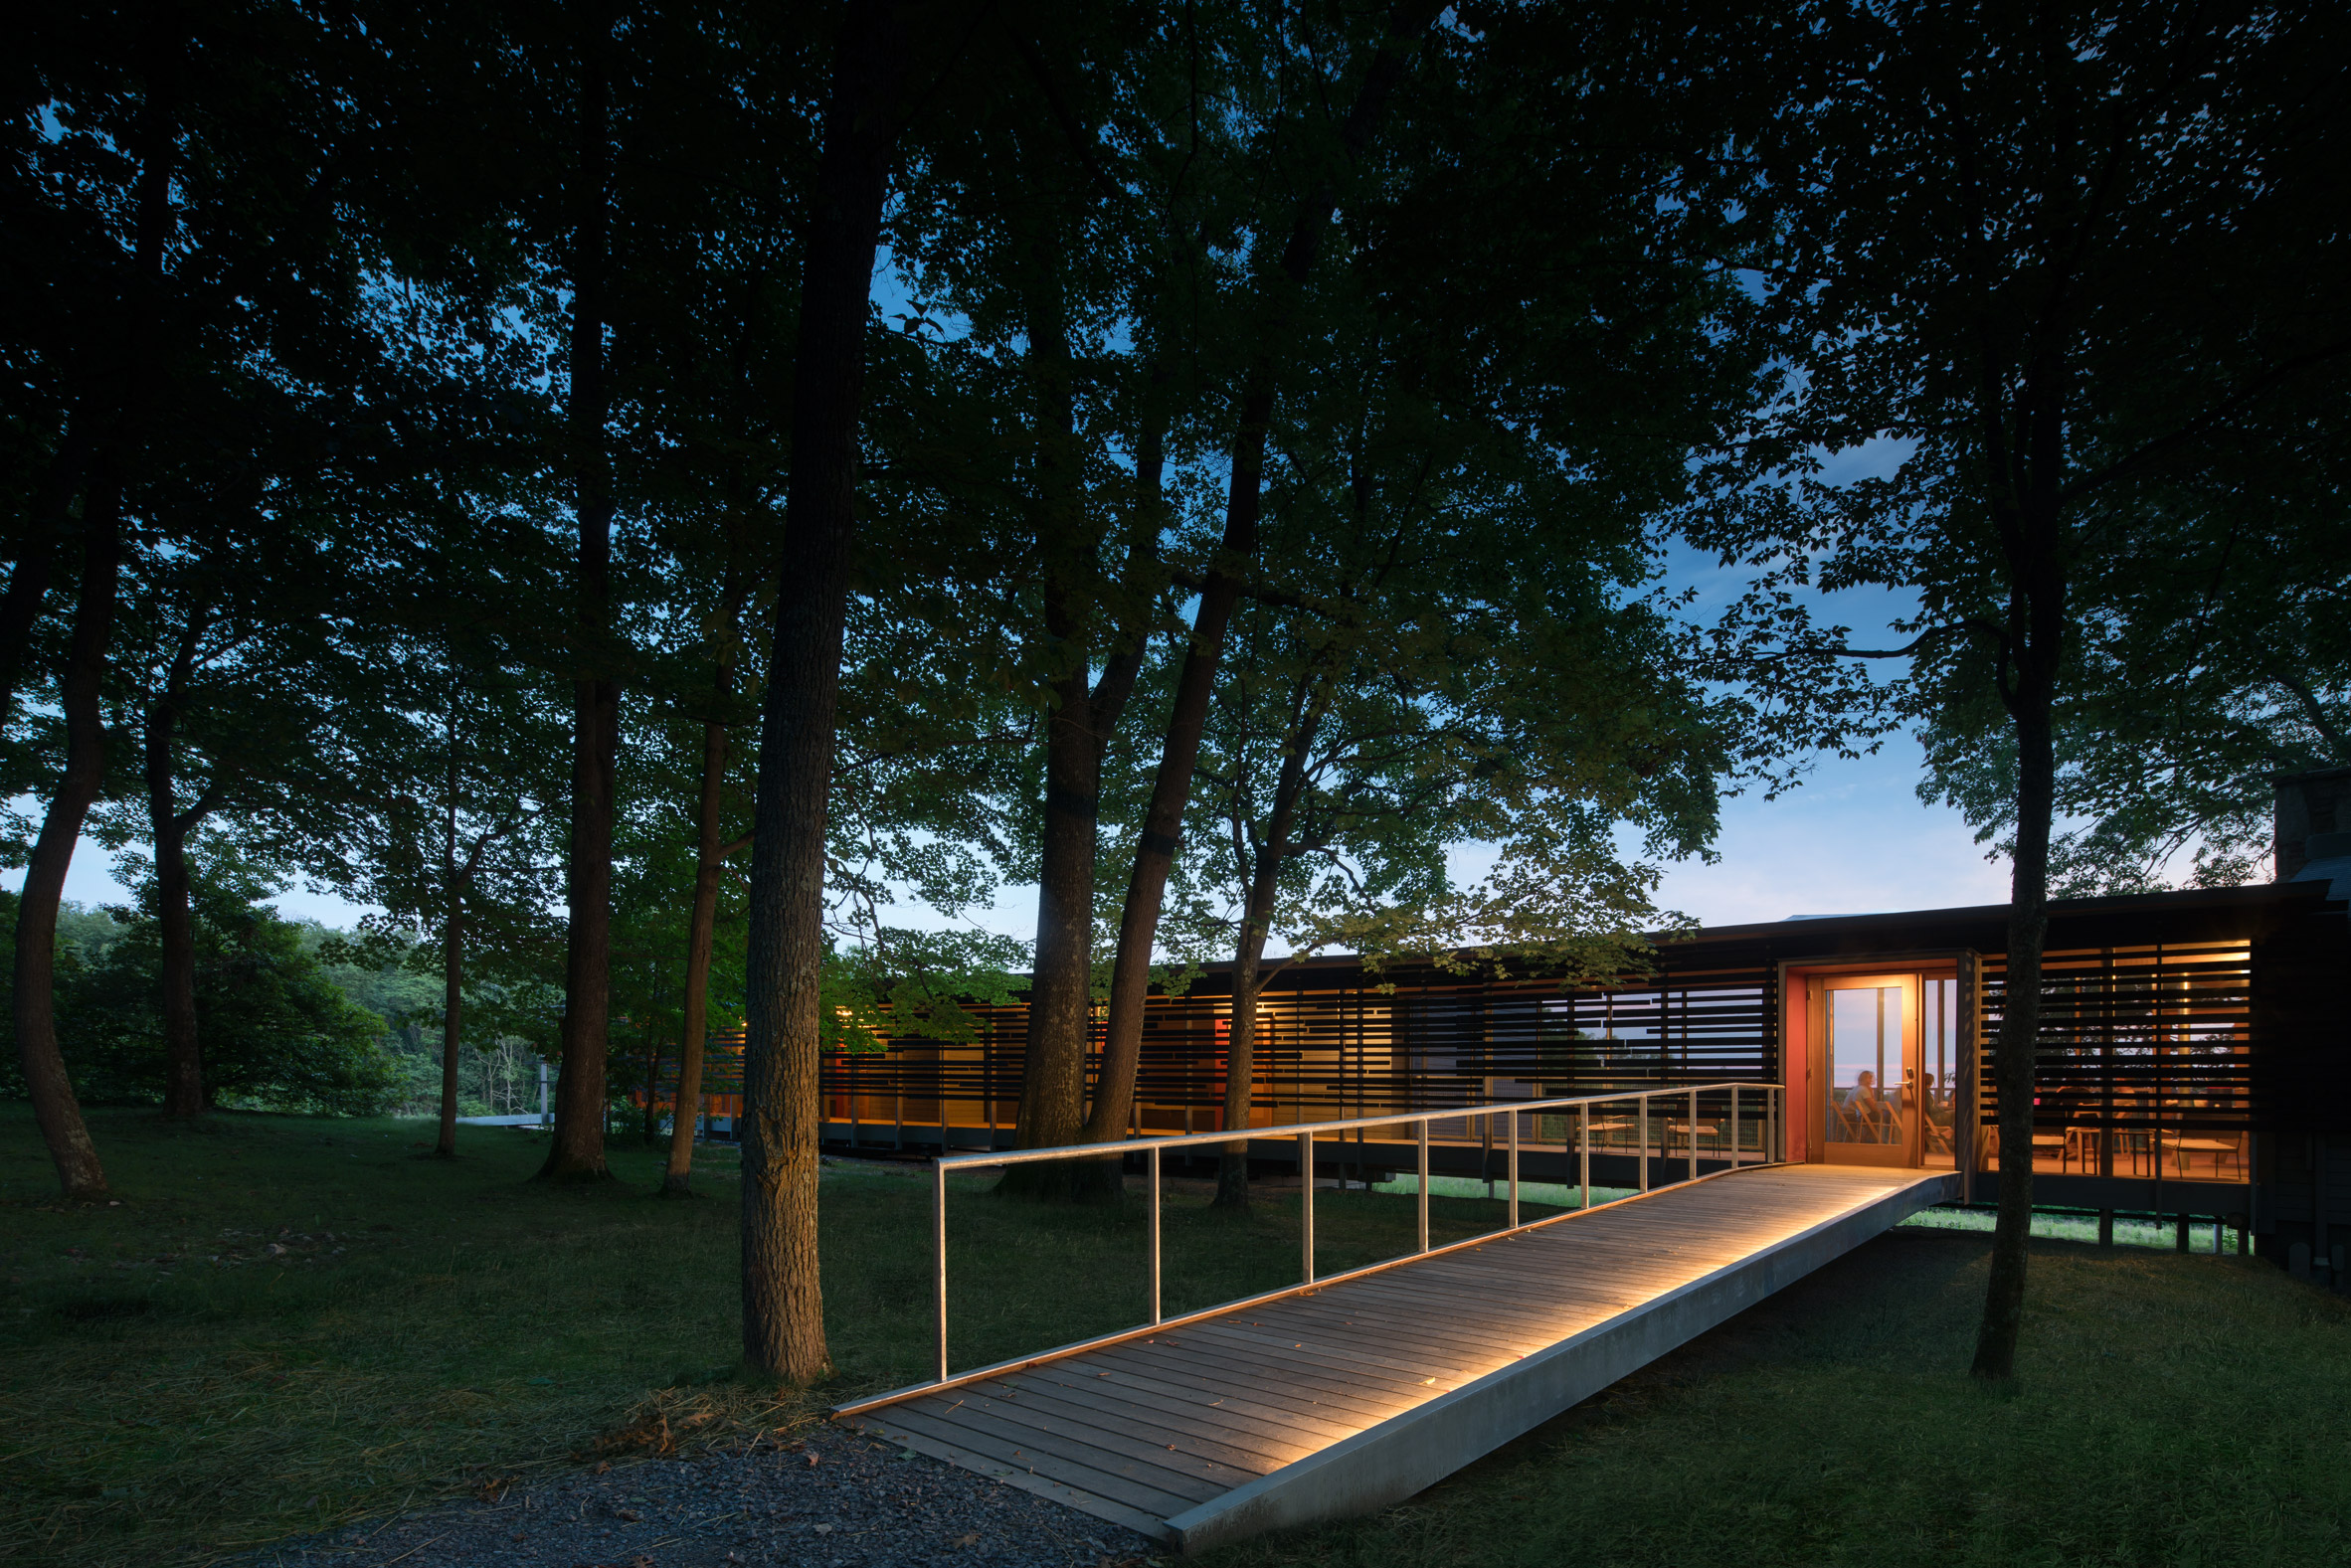 Falling Water House Usa Bohlin Cywinski Jackson Creates Cabins For Fallingwater Site In